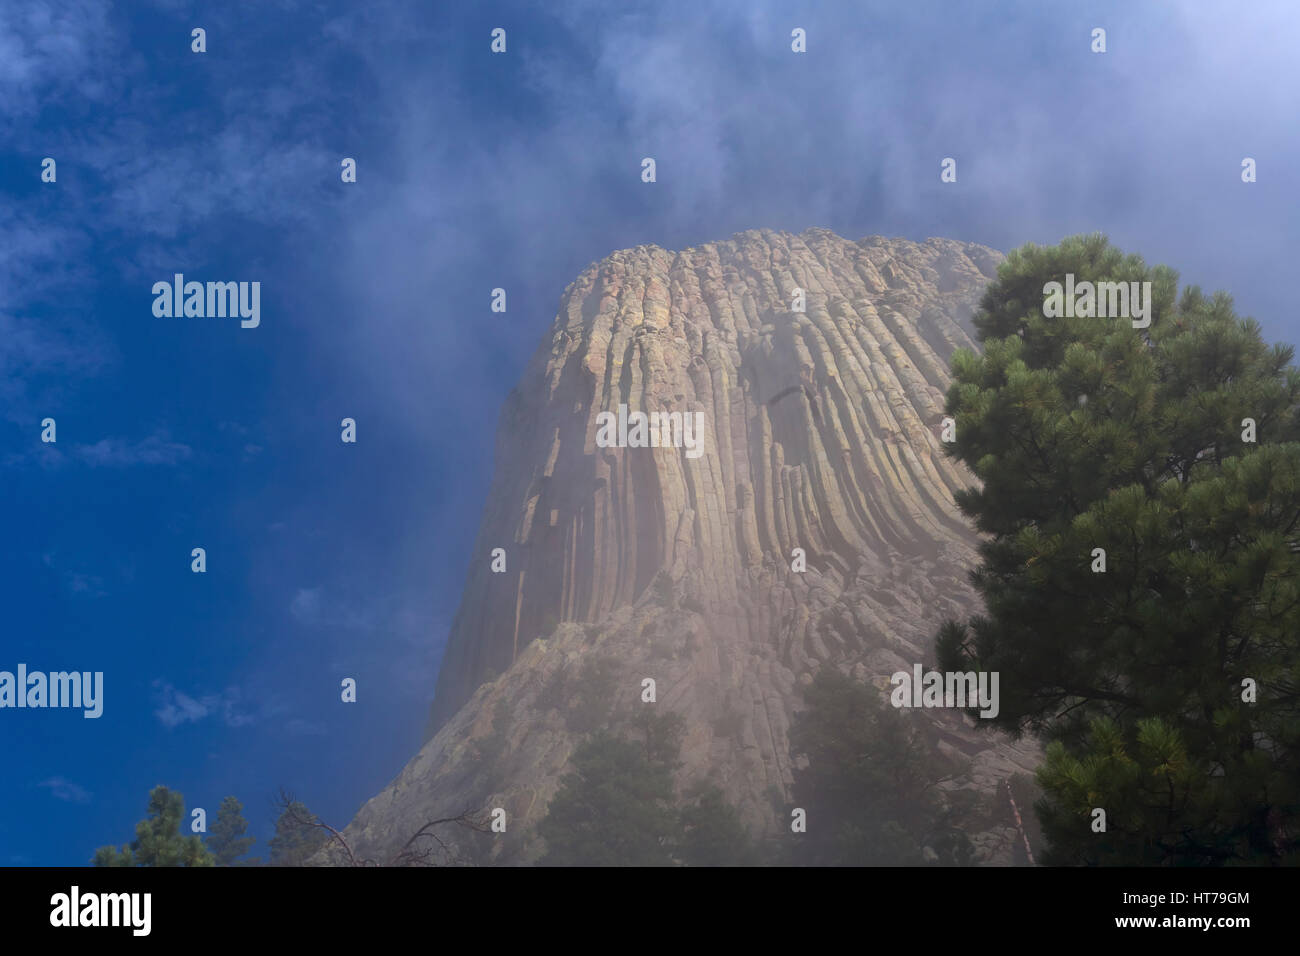 Devils Tower in fog, Devils Tower National Monument, WY, USA - Stock Image